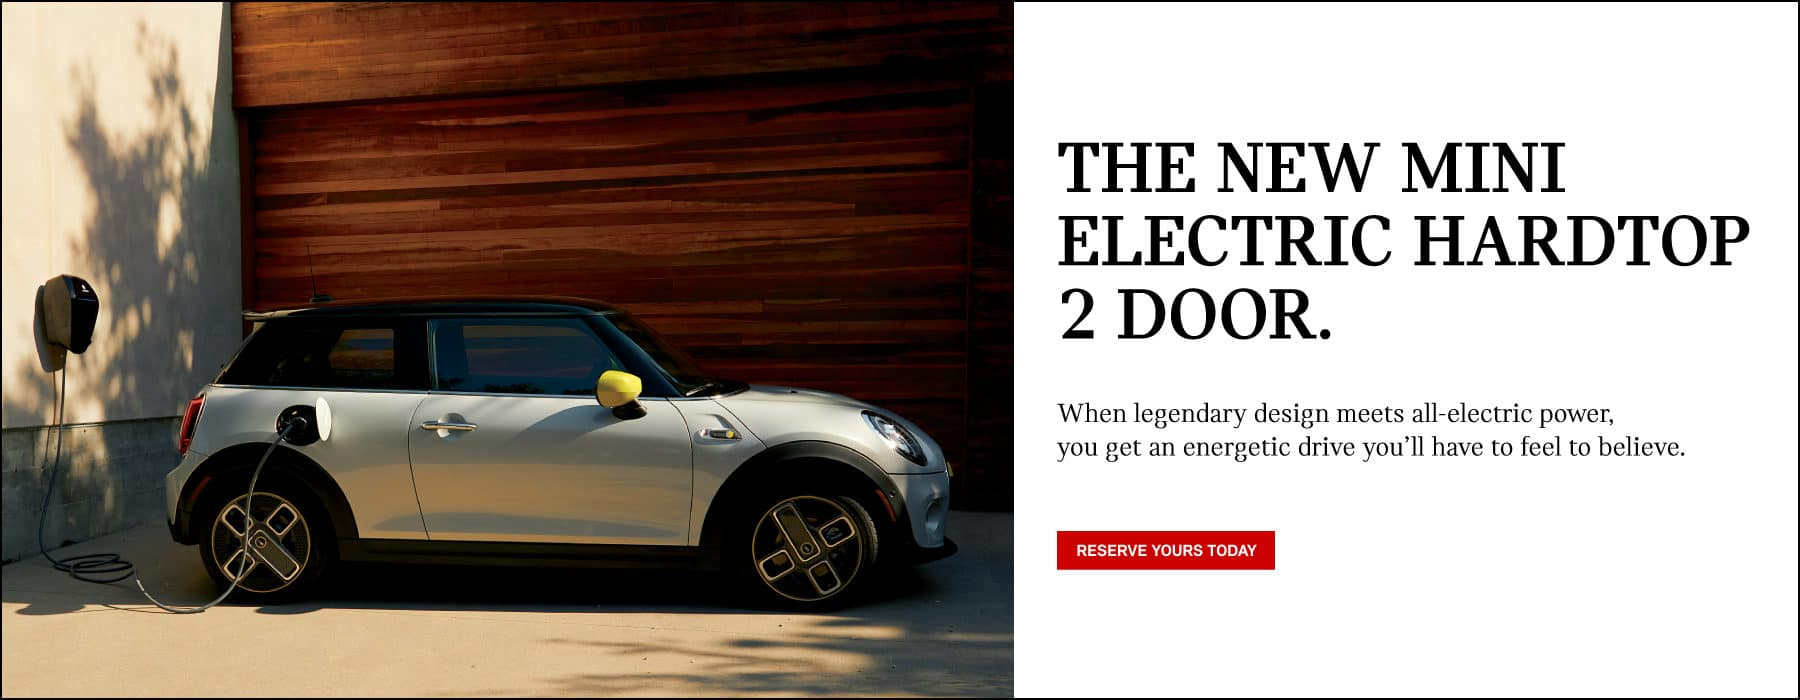 RESERVE YOUR 2020 MINI ELECTRIC HARDTOP 2 DOOR.